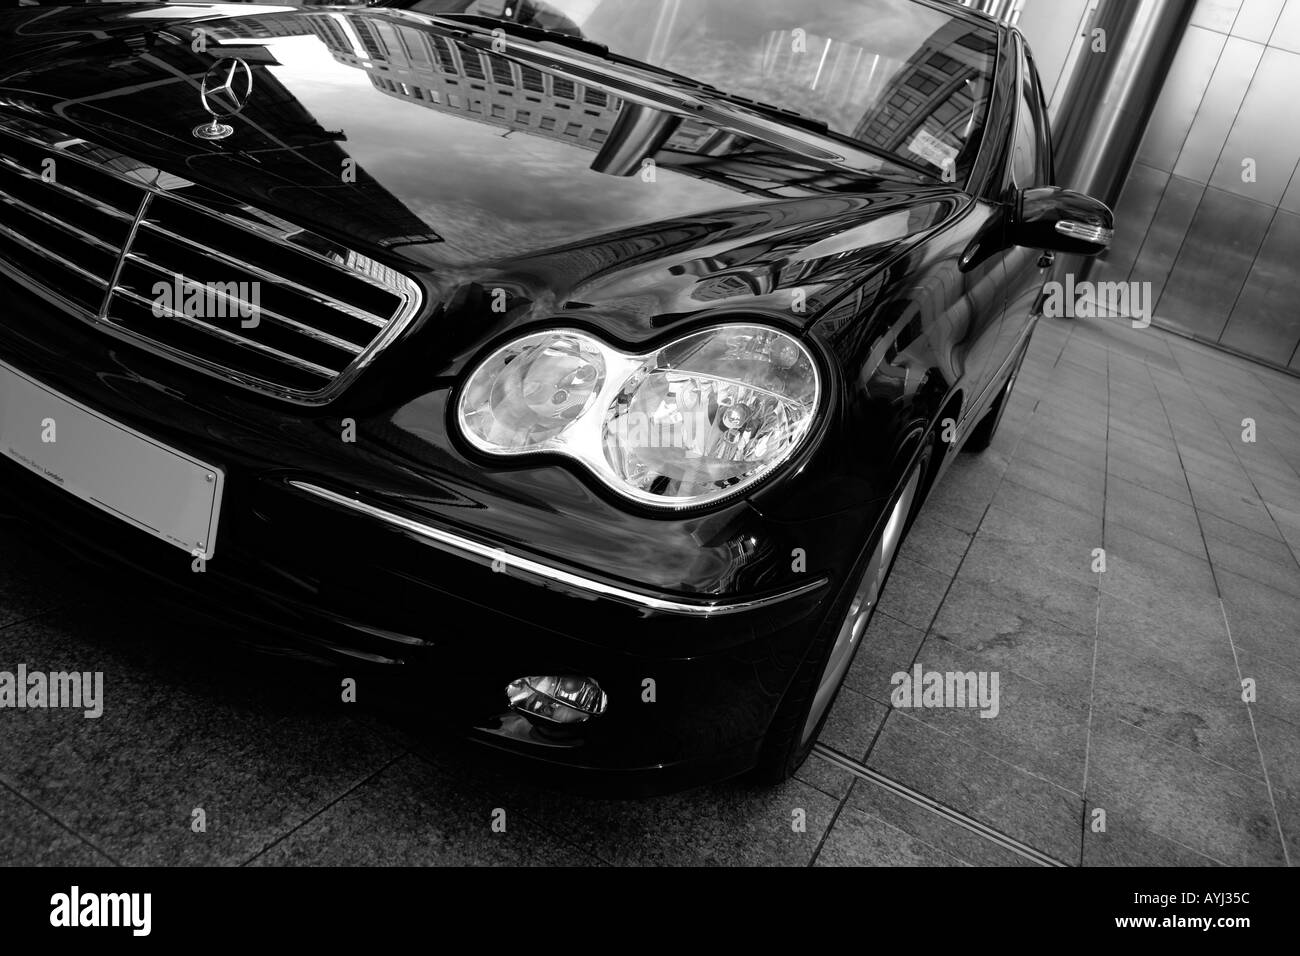 mercedes benz C Class Parked outside 1 Canada Square London - Stock Image